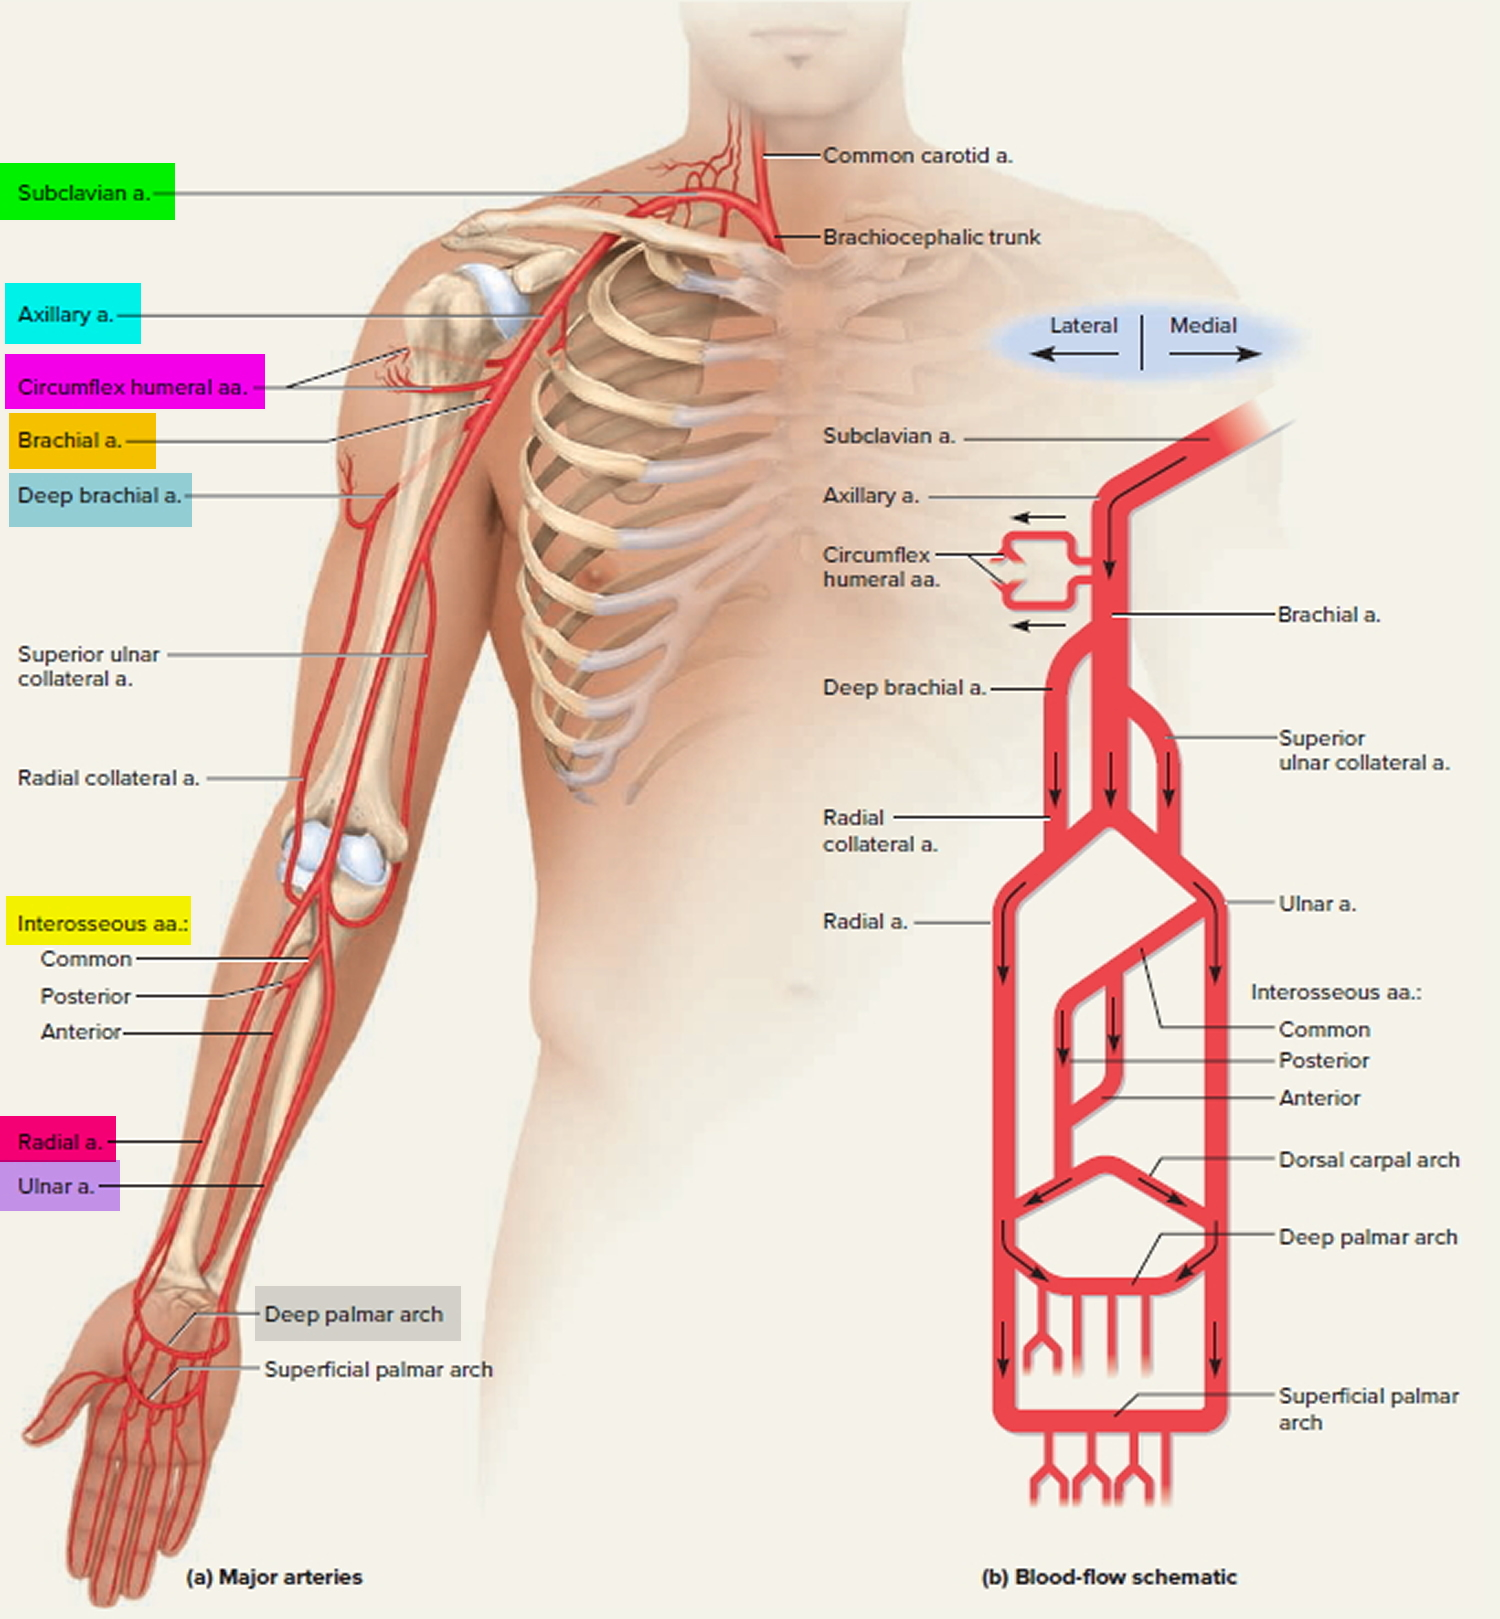 subclavian artery branches